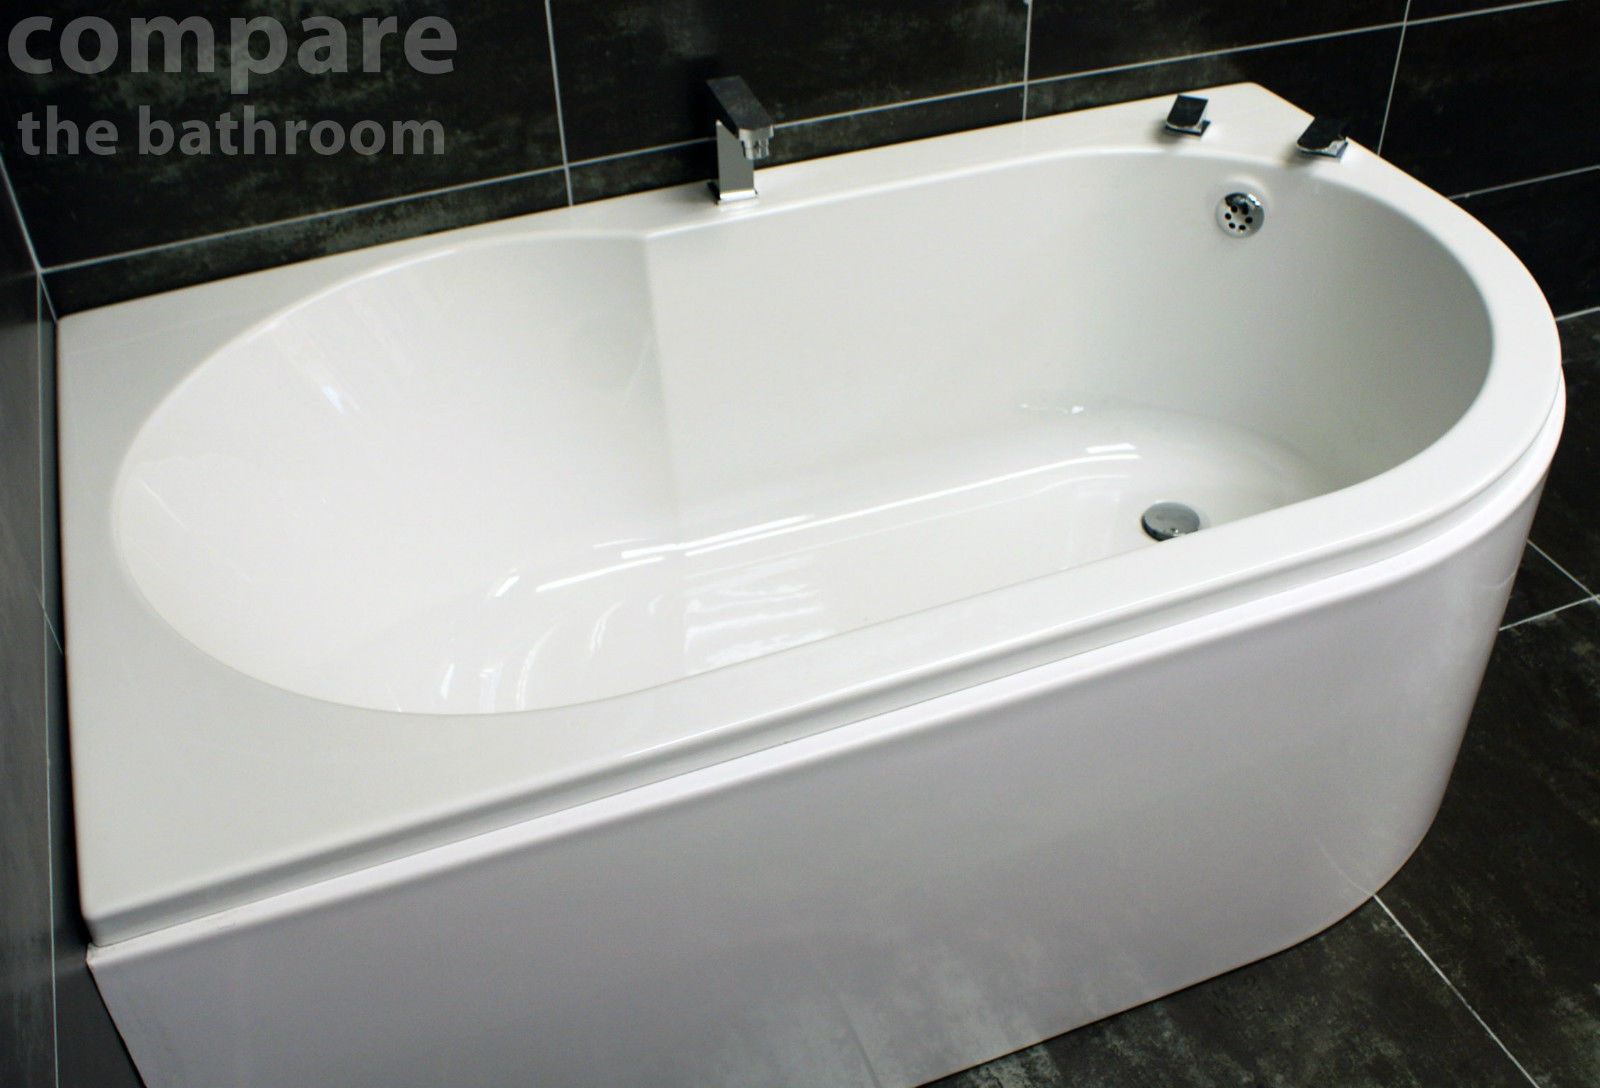 Offset Corner Bath Acrylic 1550 x 900mm White Left or Right Hand ...